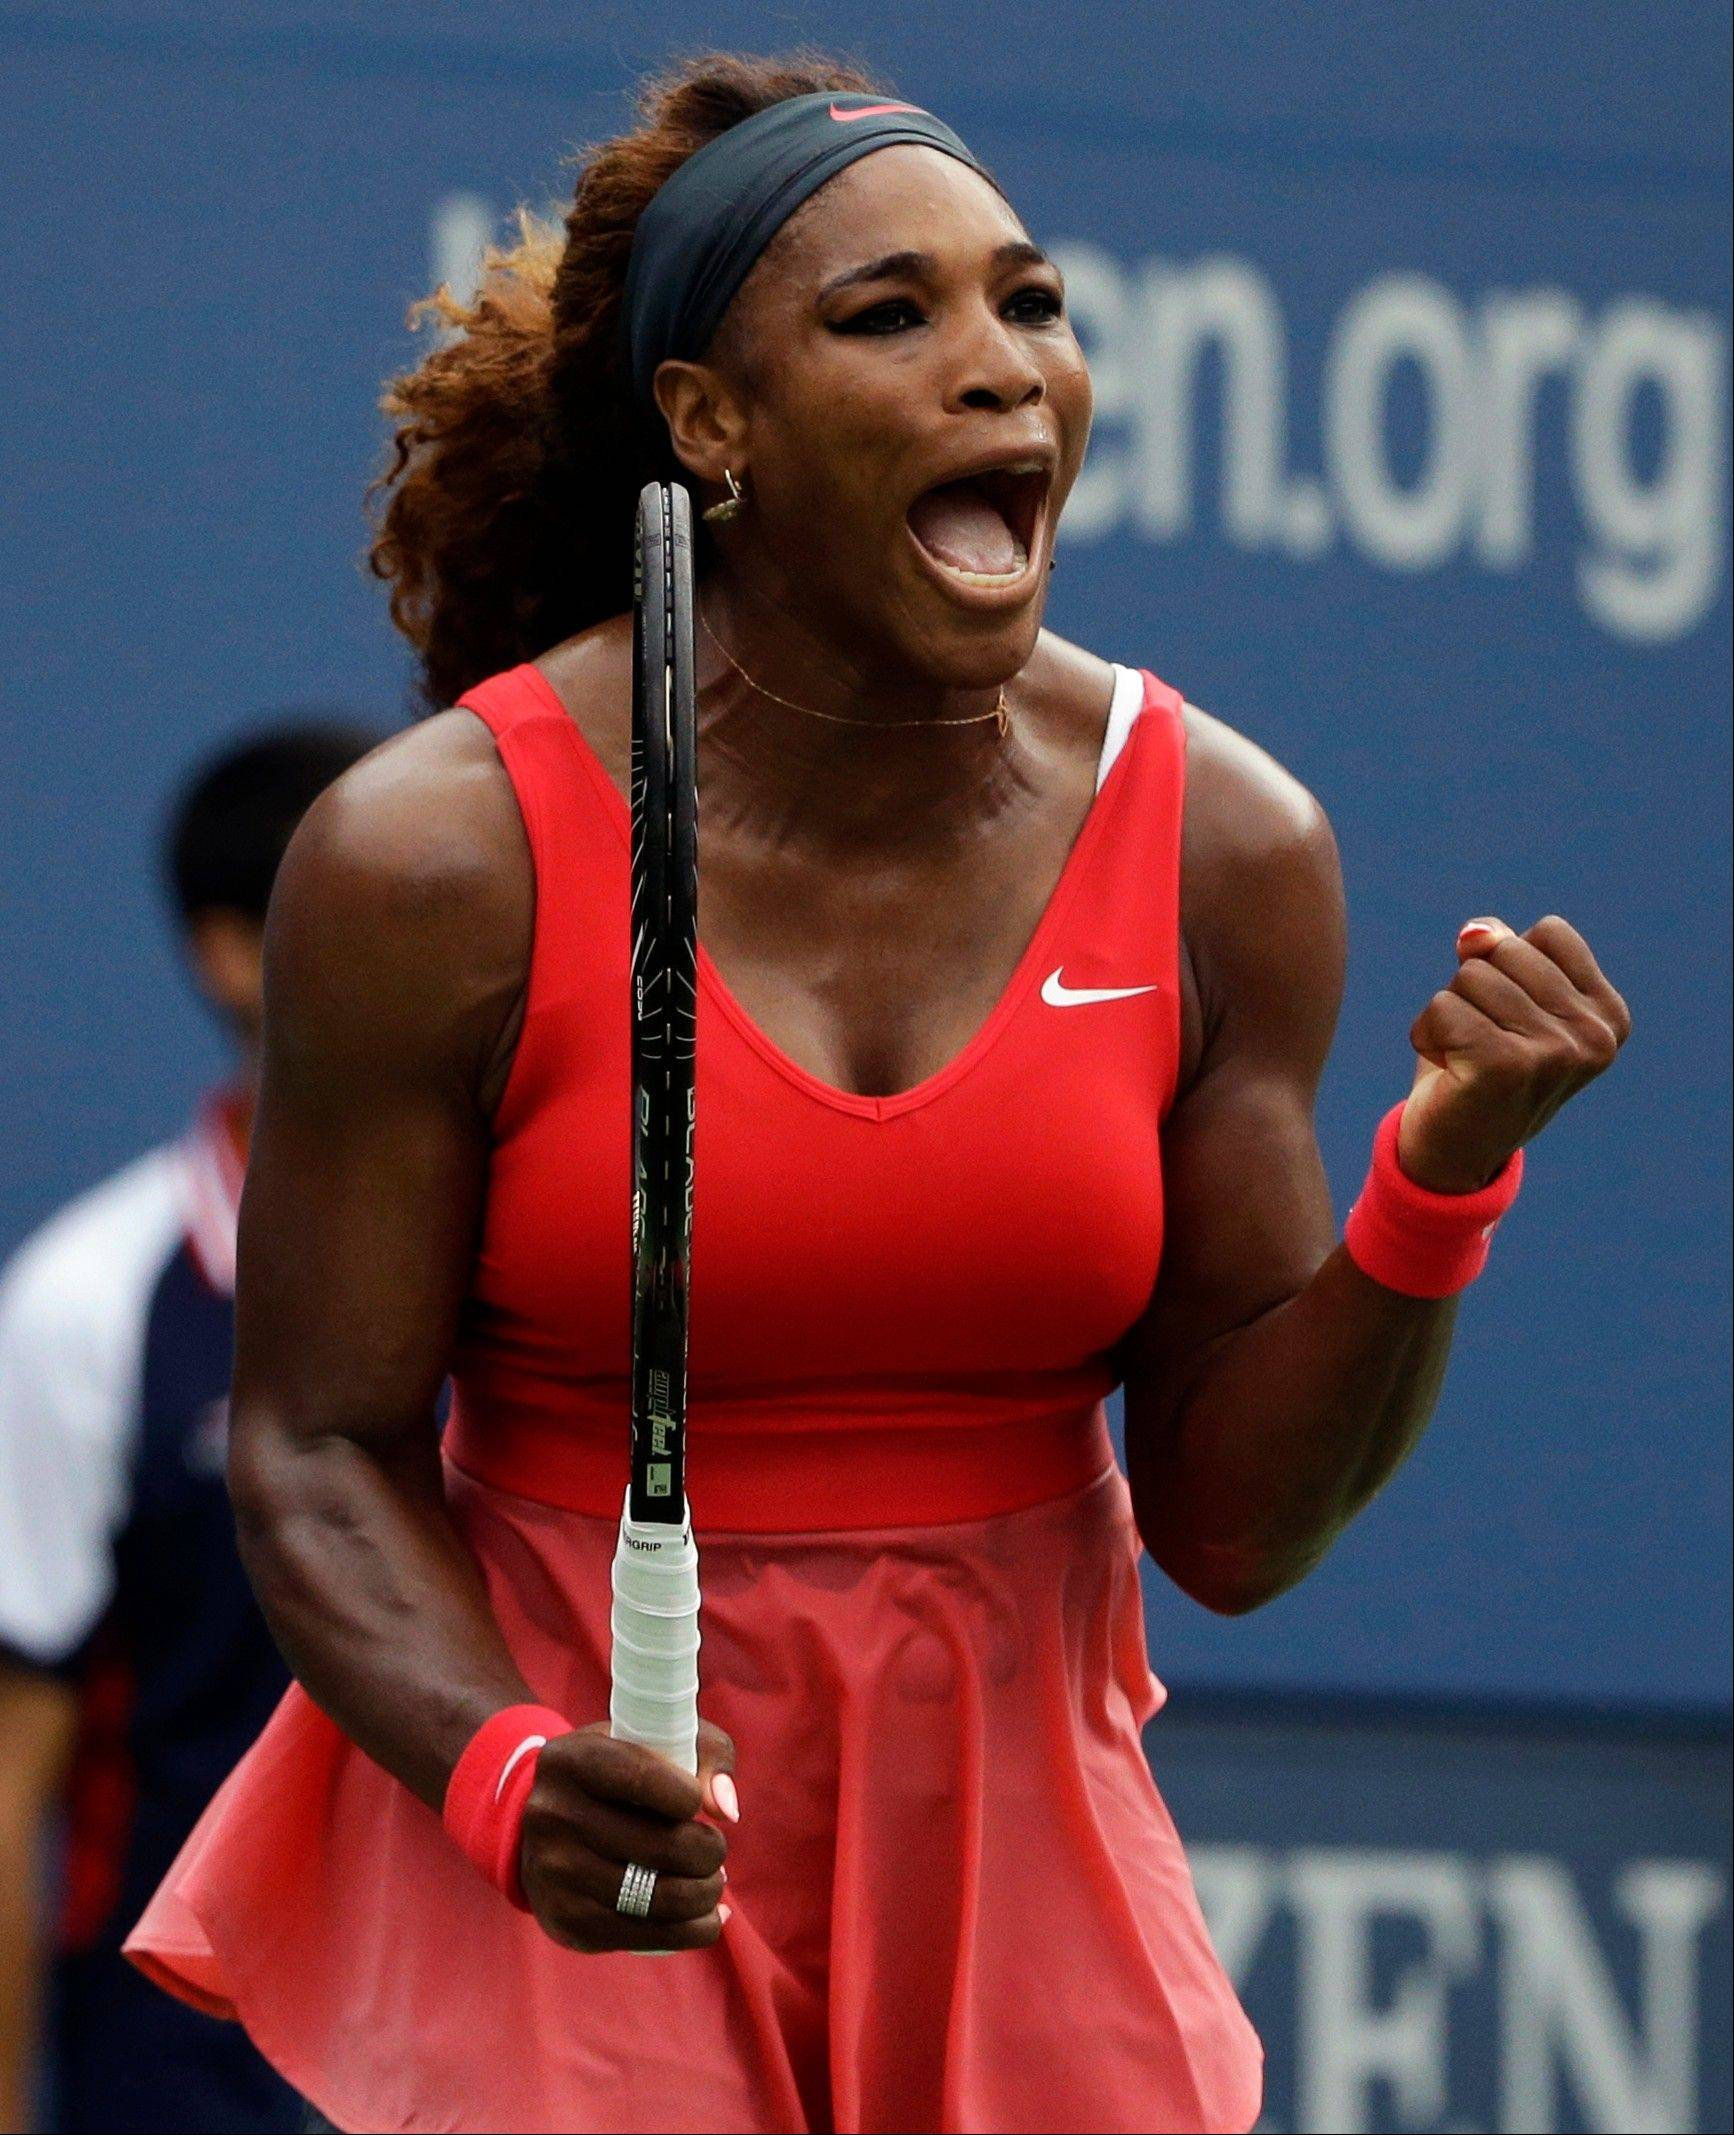 Serena Williams reacts after a point against Sloane Stephens during the fourth round of the 2013 U.S. Open tennis tournament, Sunday, Sept. 1, 2013, in New York.